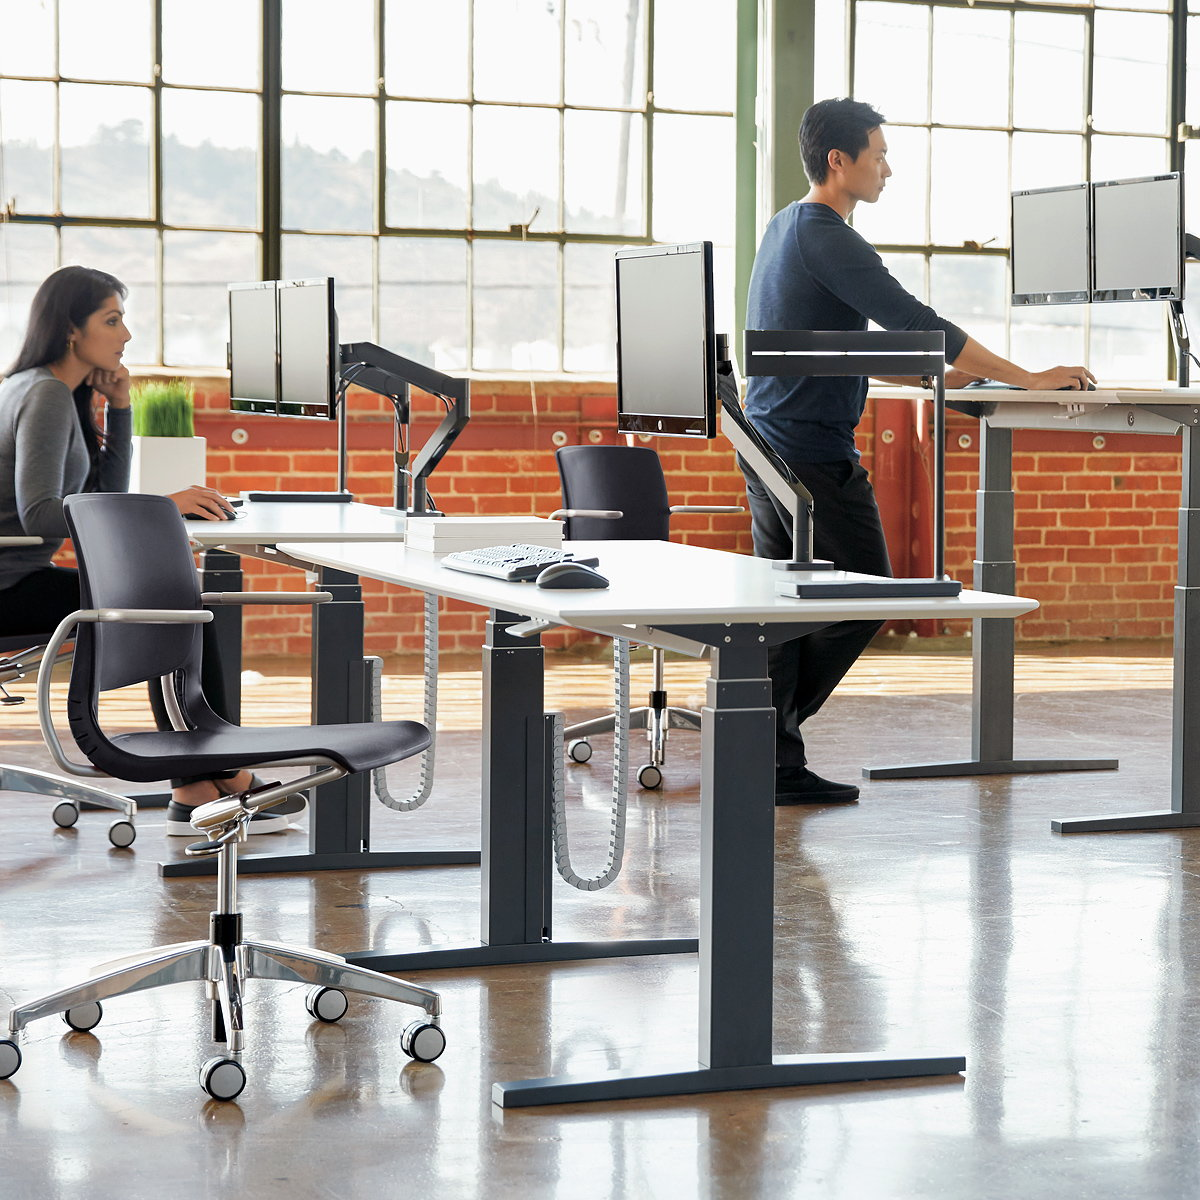 Teknion Launches Innovative Cerebro Technology to Maximize Workstation Comfort